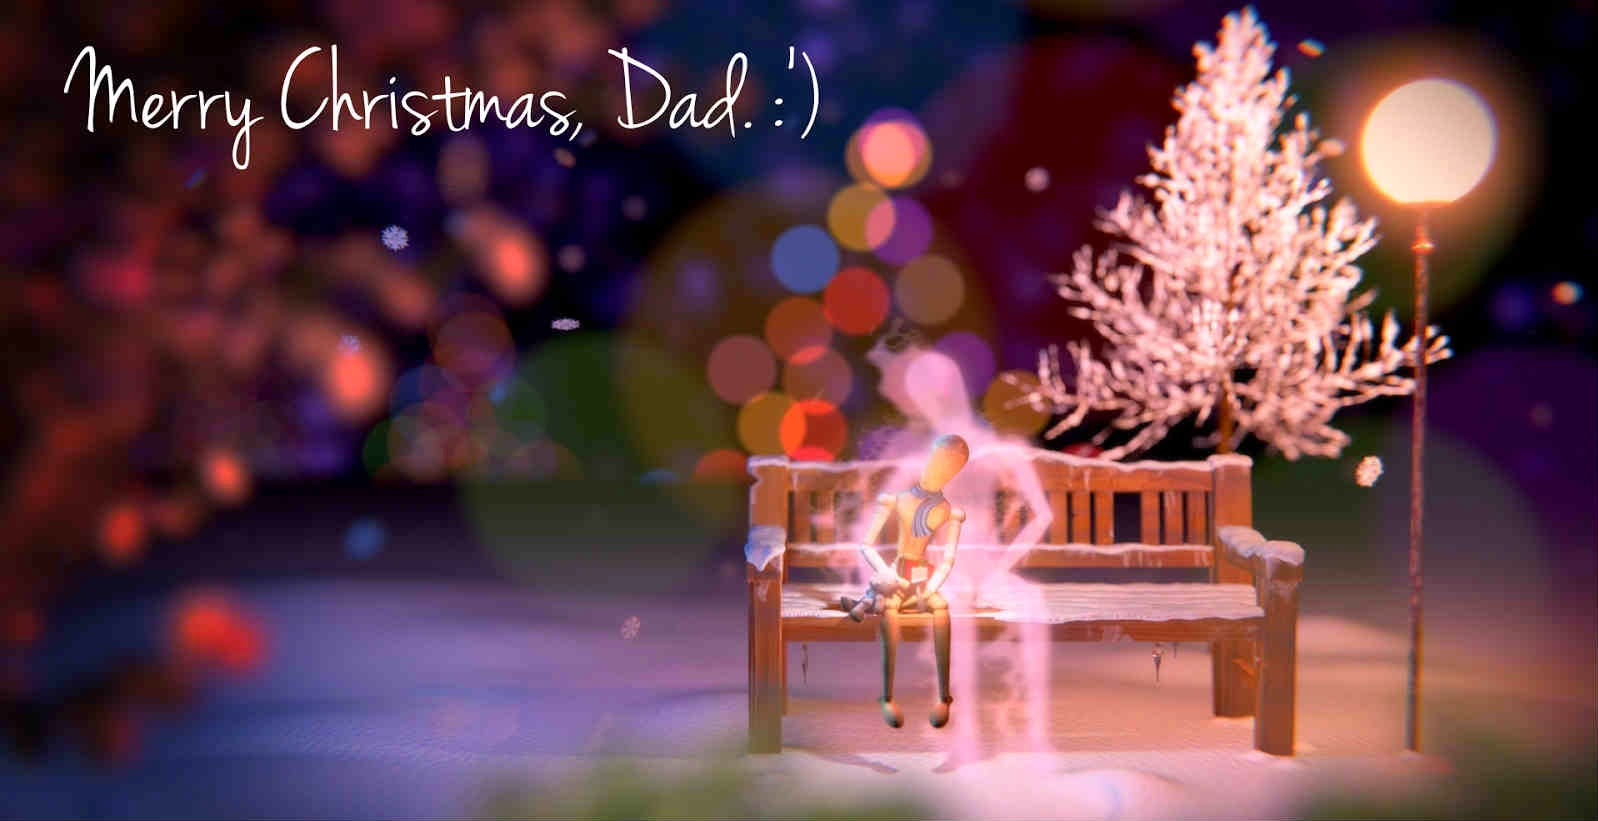 Christmas Wishes Greetings Christmas Wallpapers Best Christmas 2014